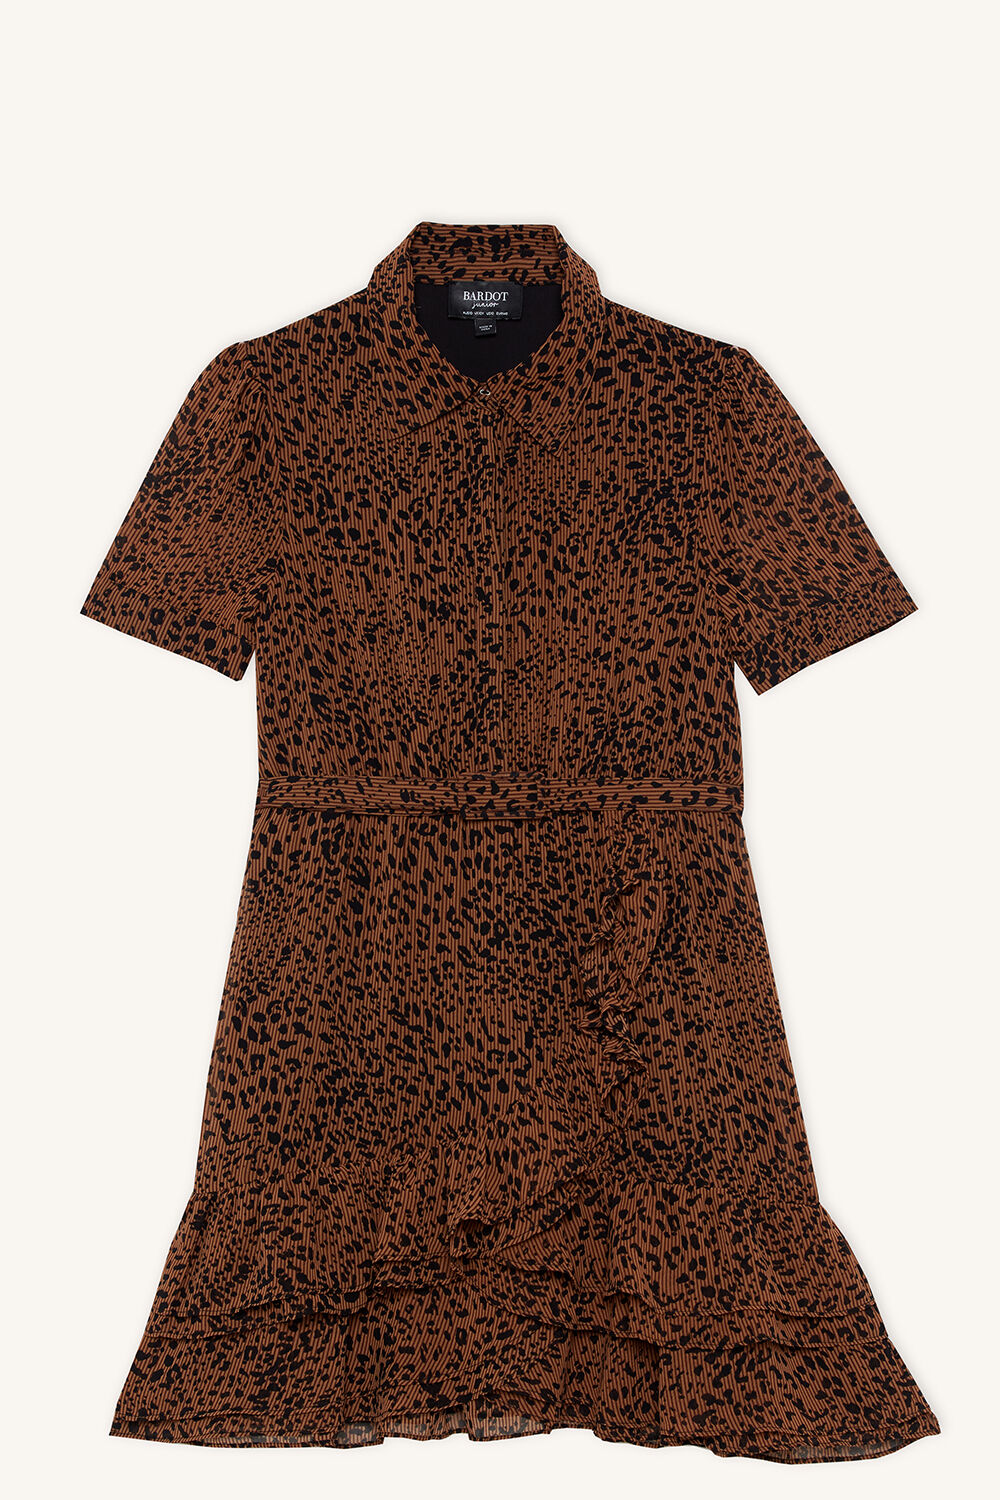 GRETTA SHIRT DRESS in colour TOBACCO BROWN